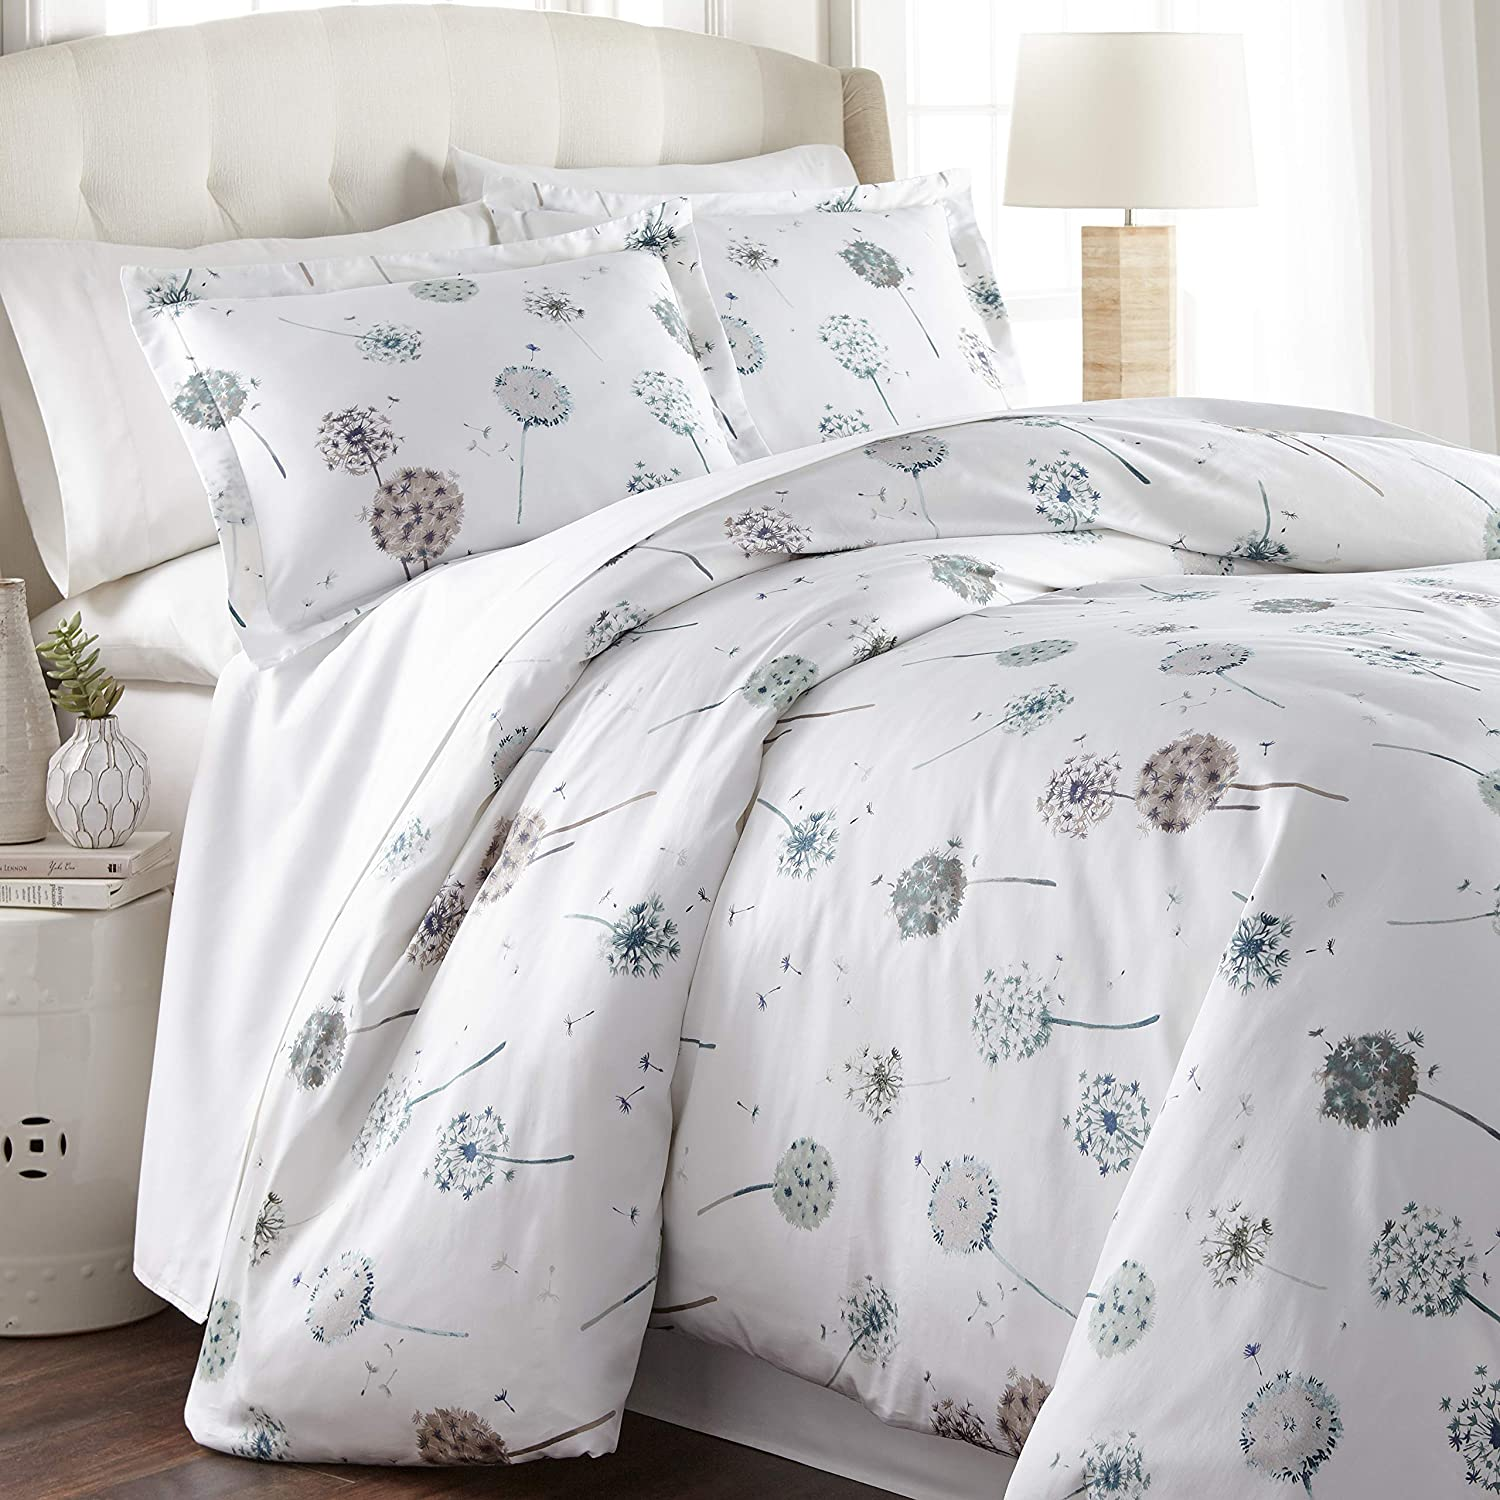 Southshore Fine Living, Inc. Dandelion Dreams Collection - 300 TC 100% Cotton Duvet Cover Set 3-Piece, Full/Queen, White